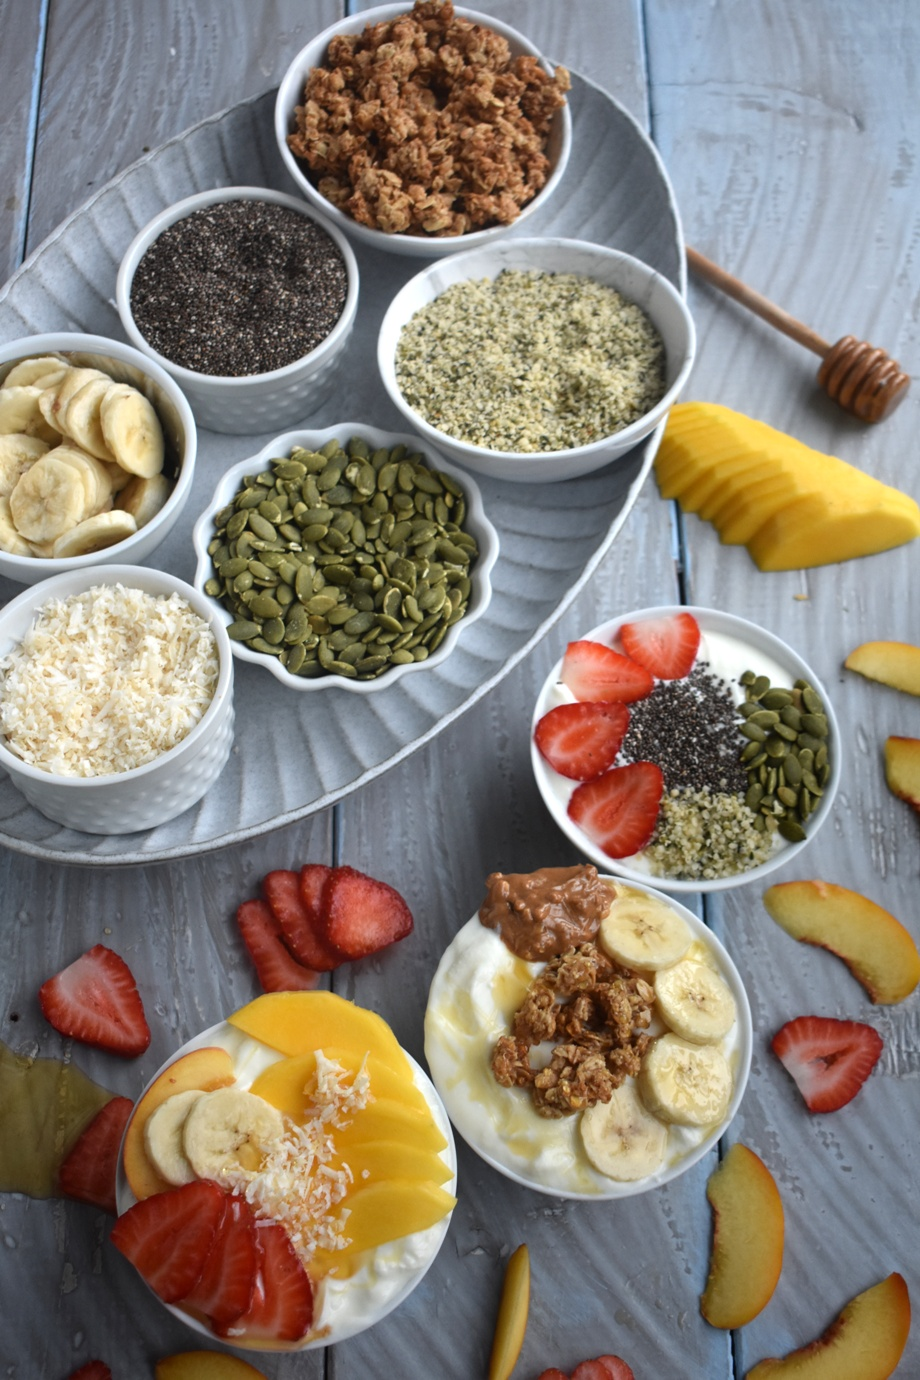 Build Your Own Yogurt Bowl Bar has tons of toppings for yogurt including fruit, honey, nuts, seeds, cereal, granola and more for a fun breakfast that the whole family will love and that is great for entertaining! www.nutritionistreviews.com